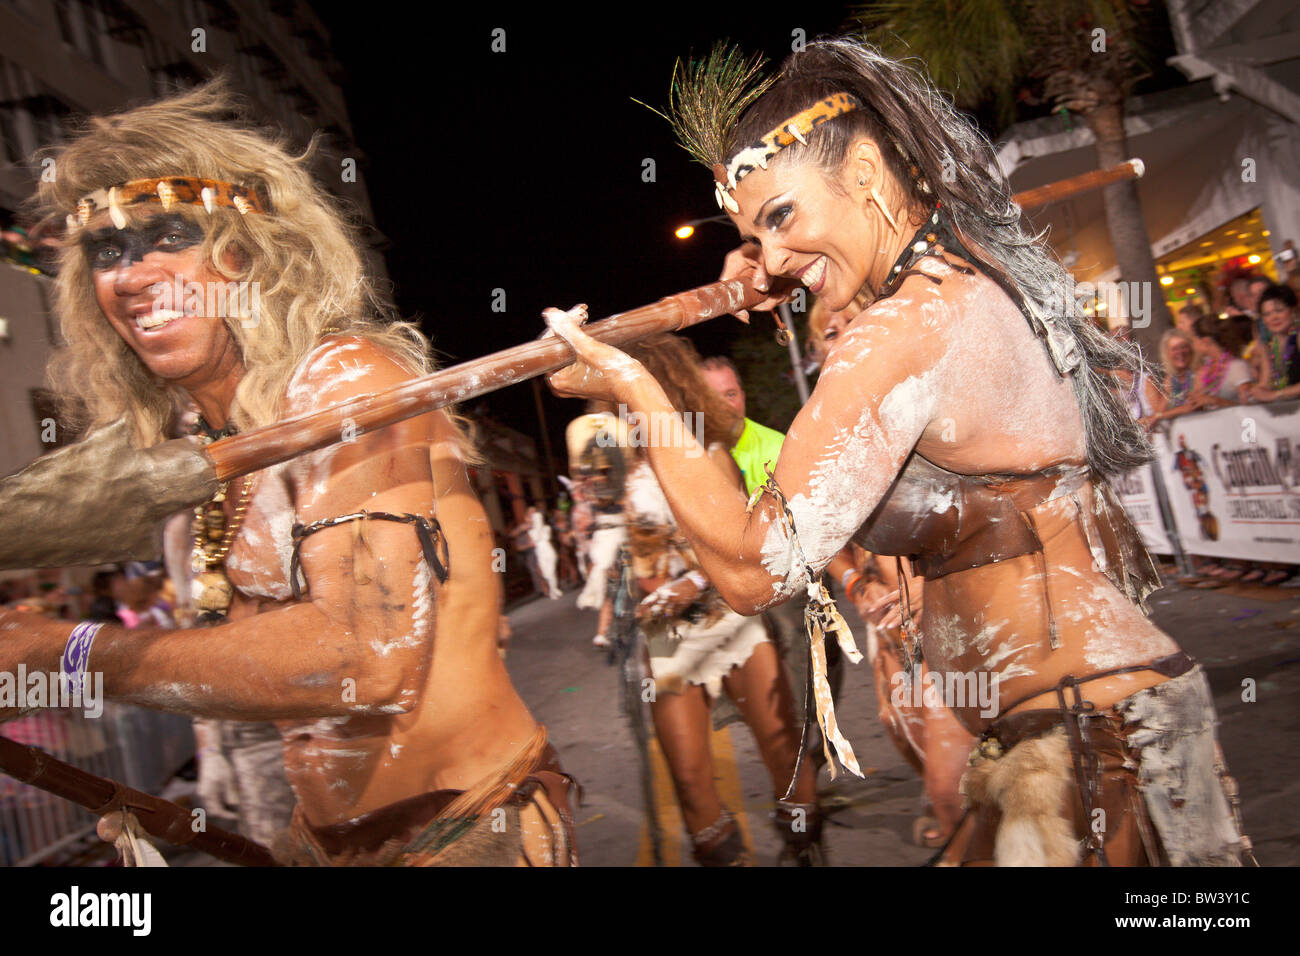 Costumed revelers during Fantasy Fest halloween parade in Key West, Florida. - Stock Image